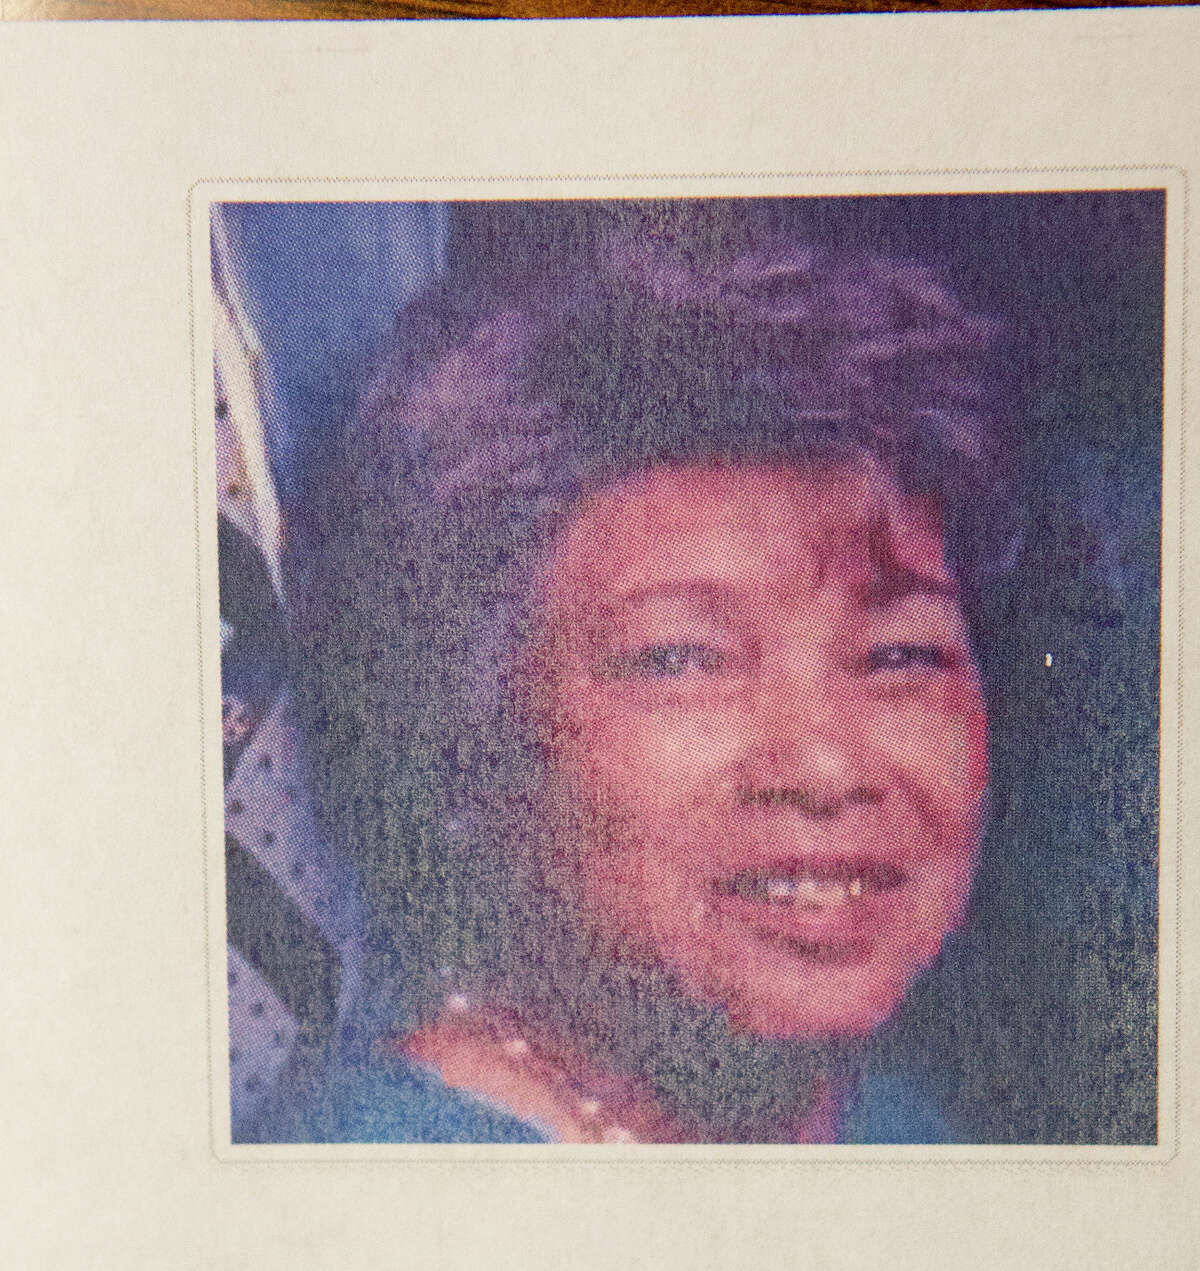 A photo of Pearlie Jean Deason is seen during a press conference, Friday, Aug. 8, 2014, in Houston. Mabrie Memorial Mortuary mixed up the deceased bodies of two Houston mothers, Edna L. Lawson and Deason and buried Deason's body in Lawson's cemetery plot at the VA cemetery on top of the body of Lawson's deceased husband, a World War II Veteran. Lawson passed away on July 19, 2014 and Mrs. Deason passed away on July 22, 2014. (Cody Duty / Houston Chronicle)